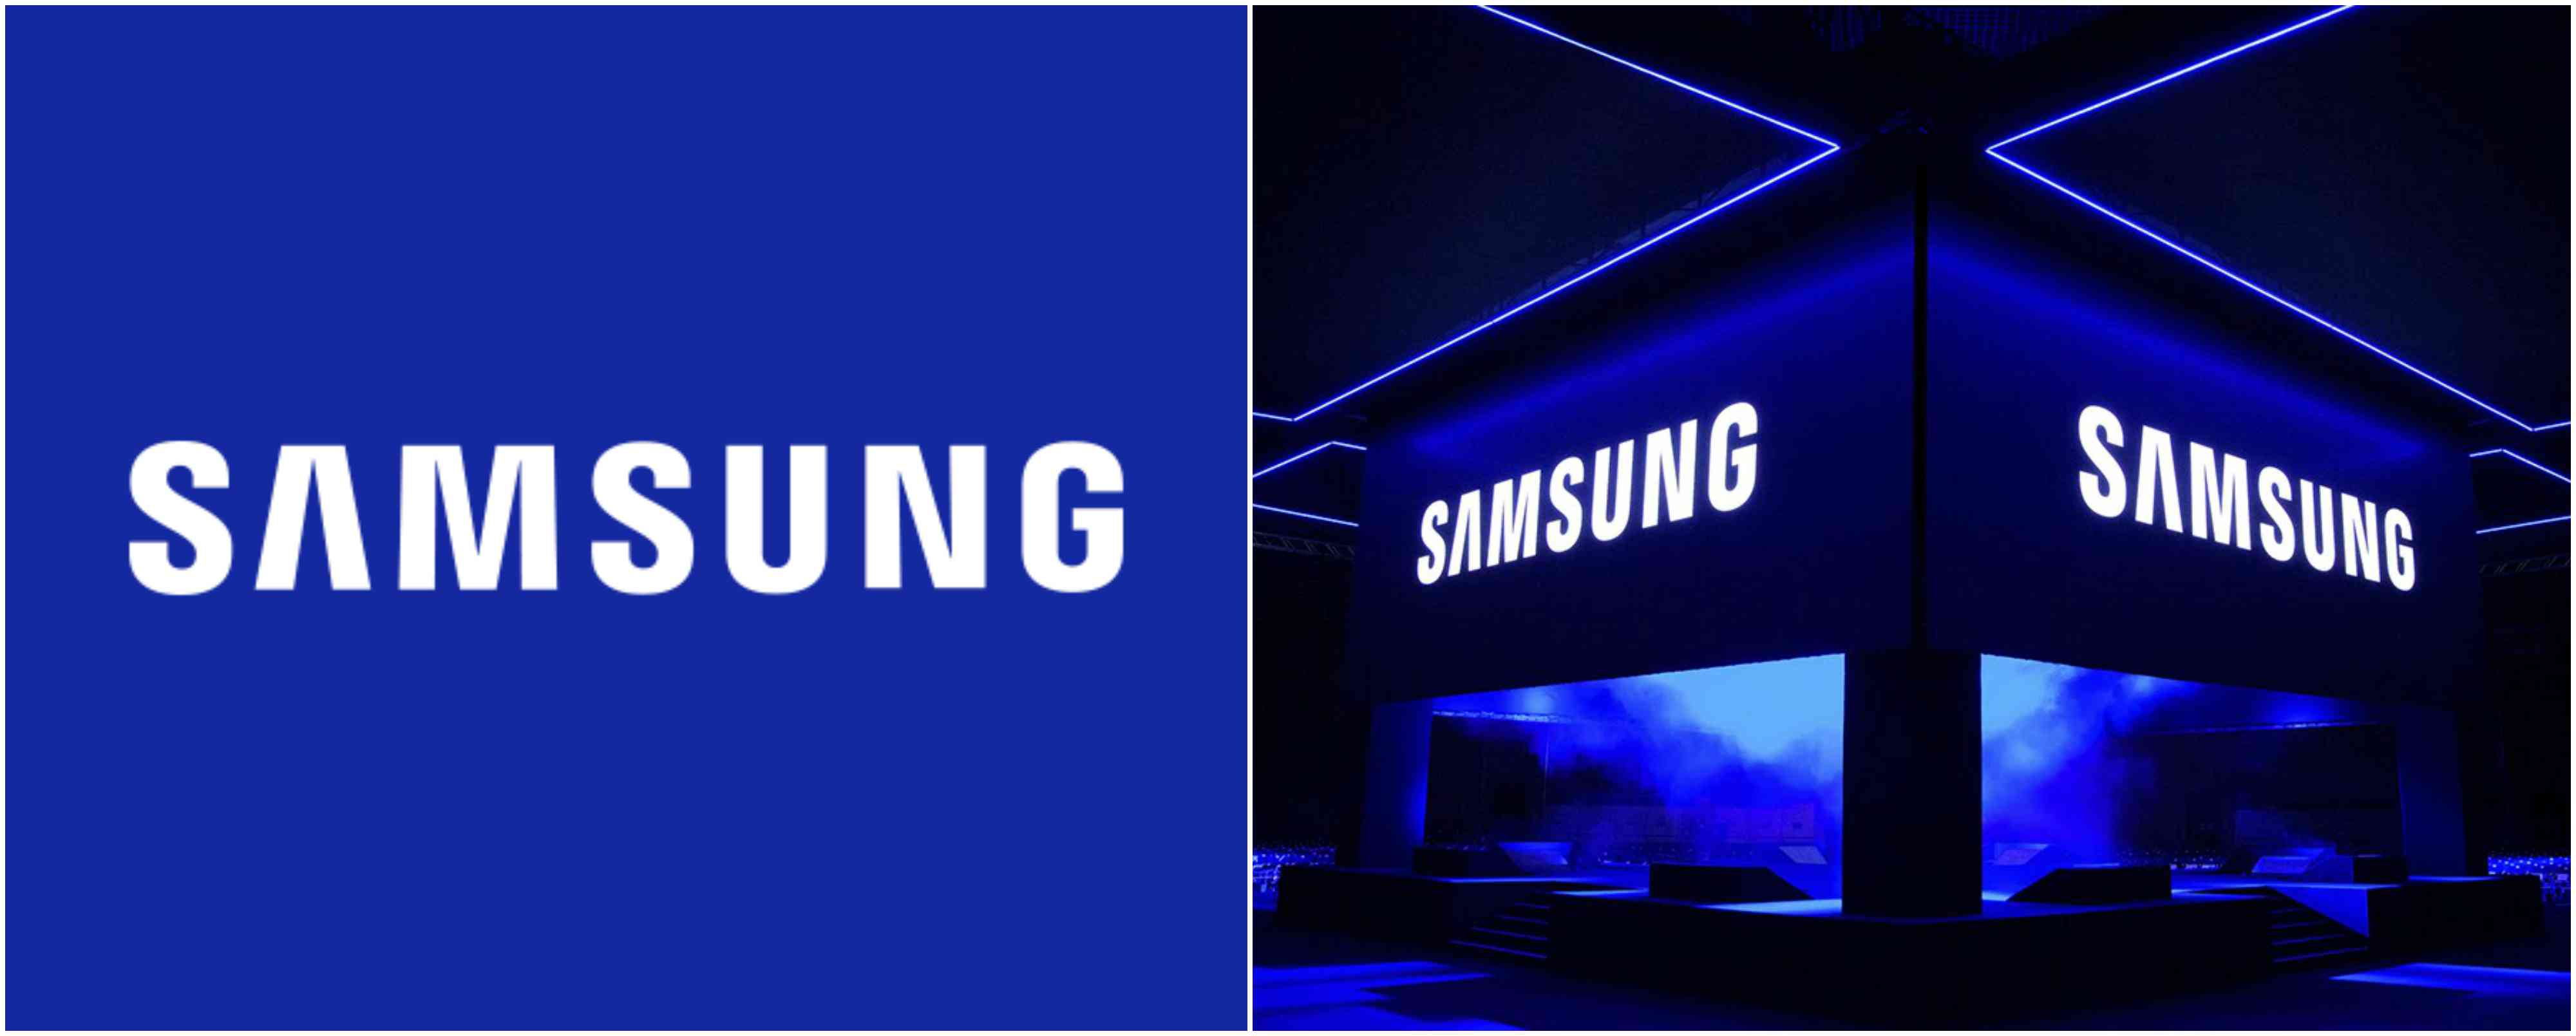 Most Powerful Technology Brands in The World 2017, Top 10 List